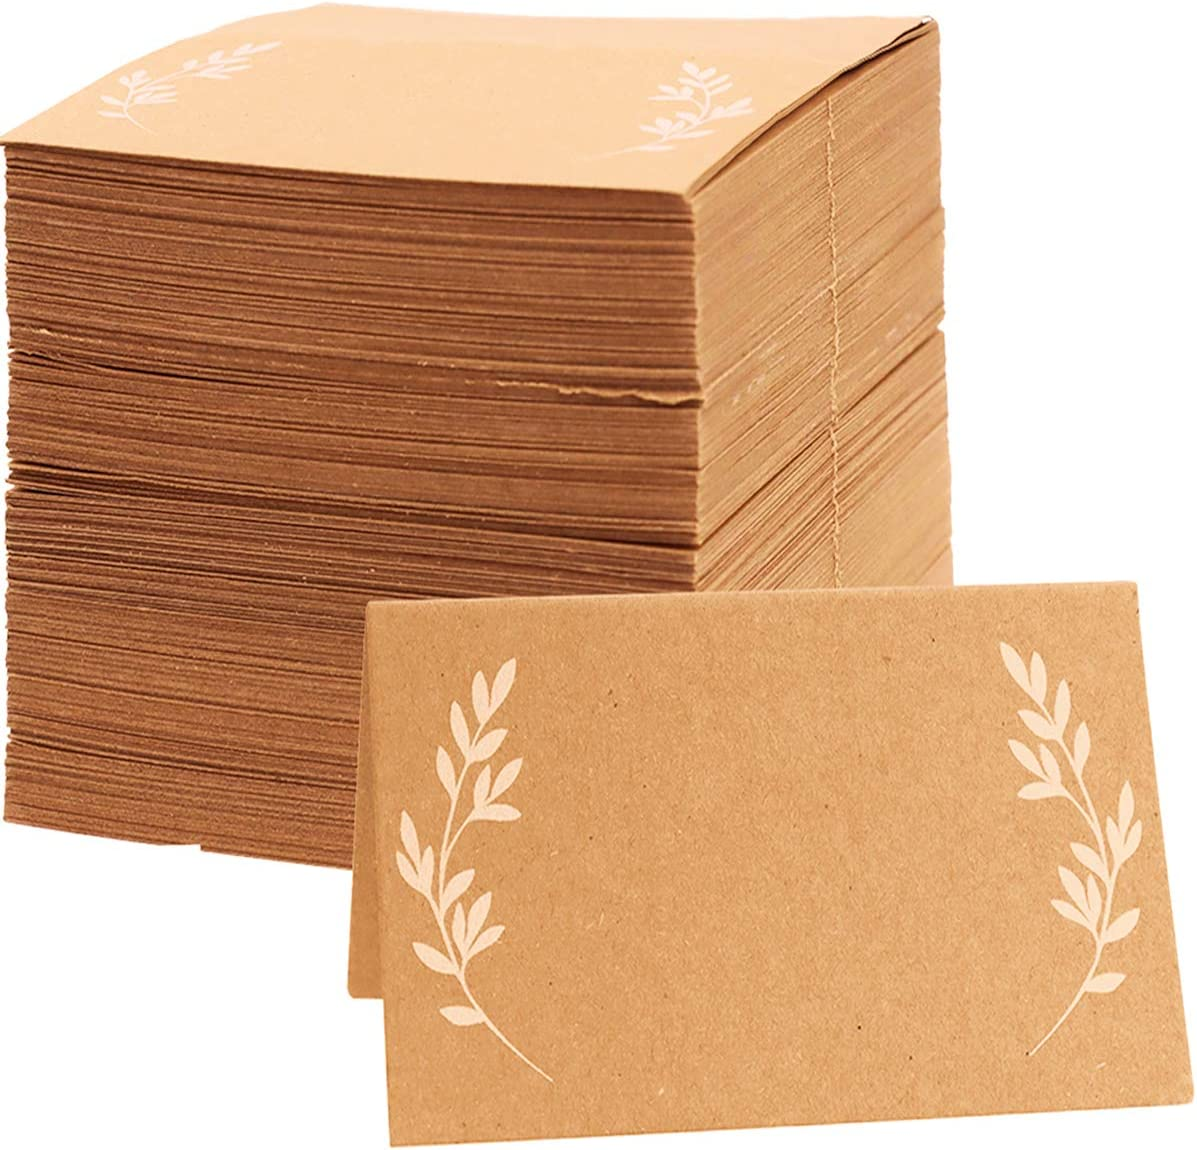 MotBach 150 Pcs Place Cards,Rustic Place Cards,Kraft Tent Escort Cards with White Leaves,for Name, Table Seating, Table Number,for Wedding, Banquets, Party or Reception(Brown)